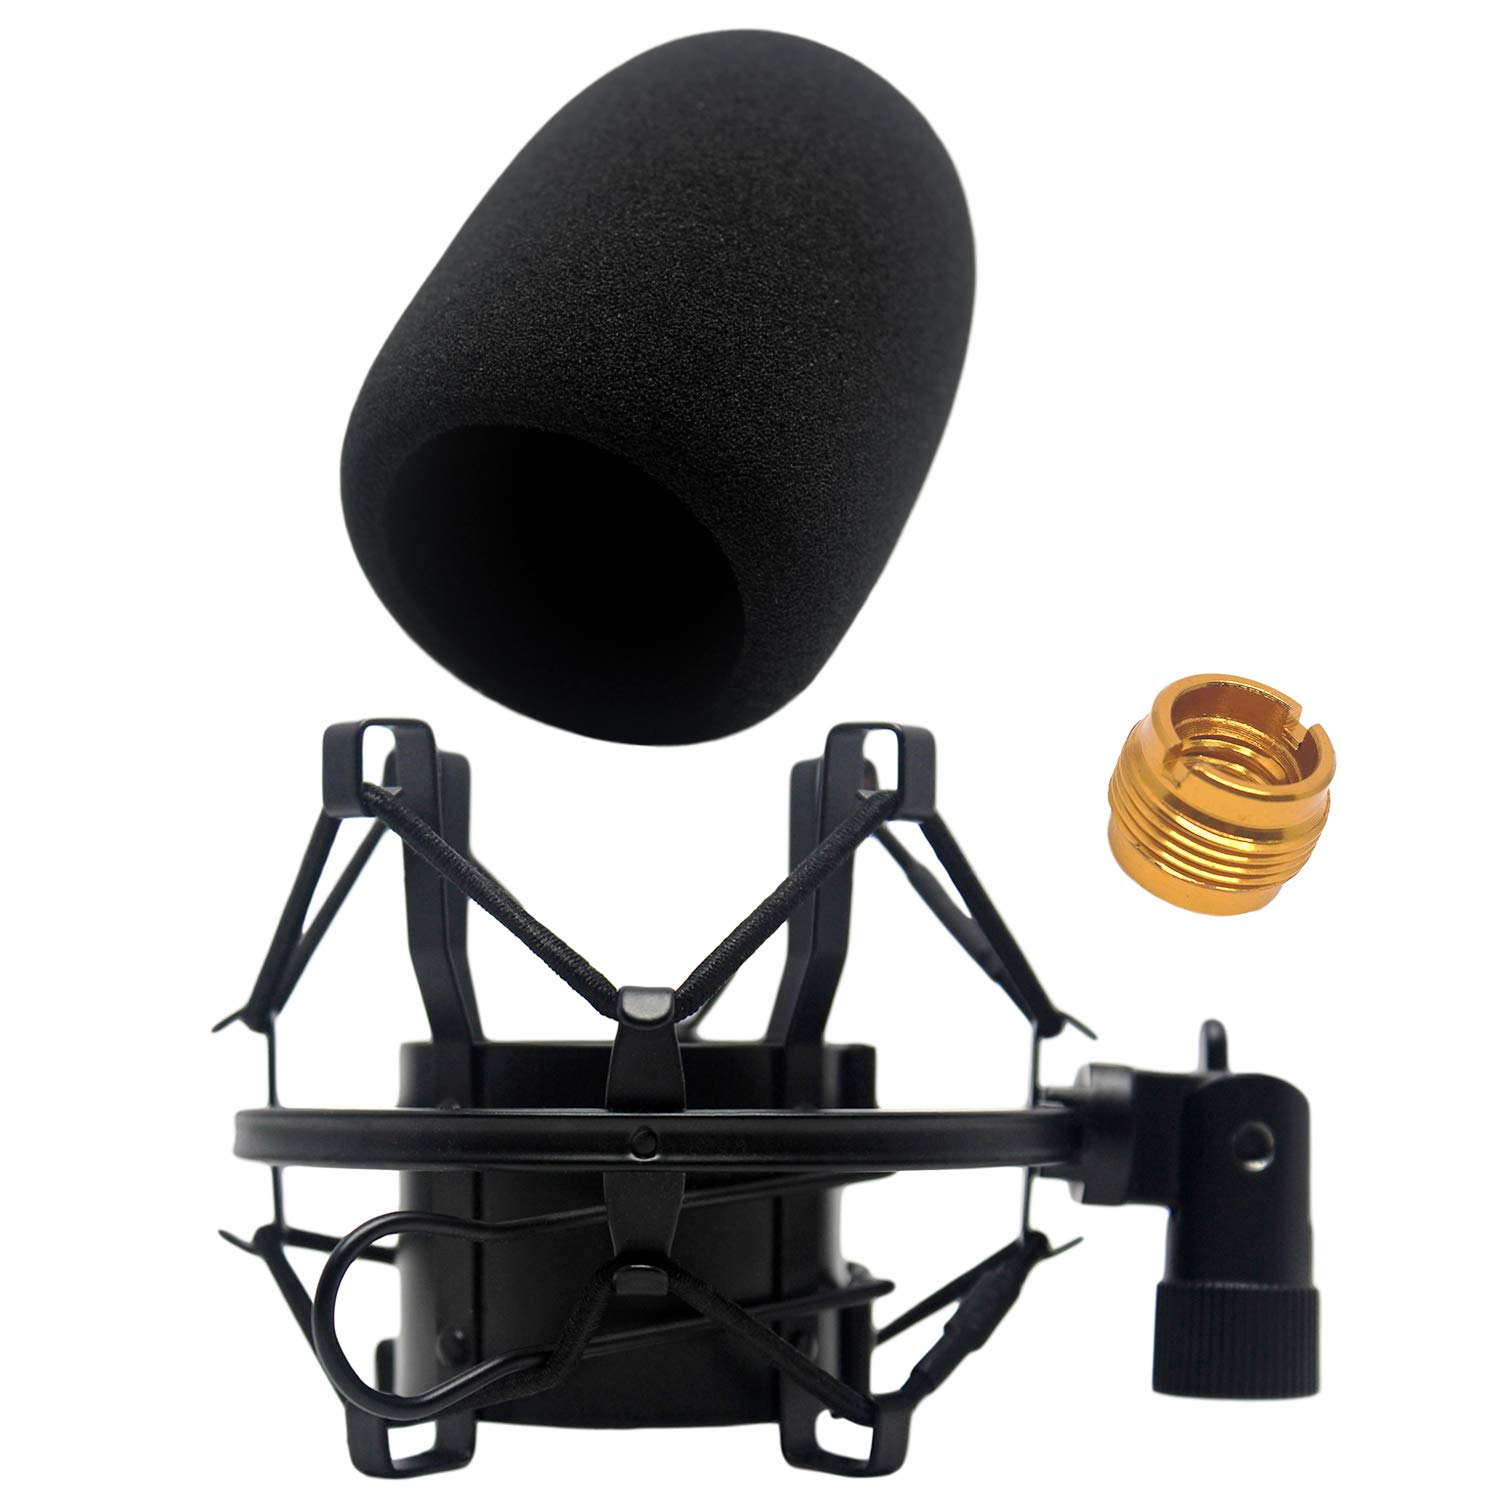 AT2020 Foam Windscreen with Shock Mount by Vocalbeat - Mount Made from Quality Materials to Eliminate Vibrations - Acoustic Foam Act as a Pop Filter for your Mic - Black Bundle